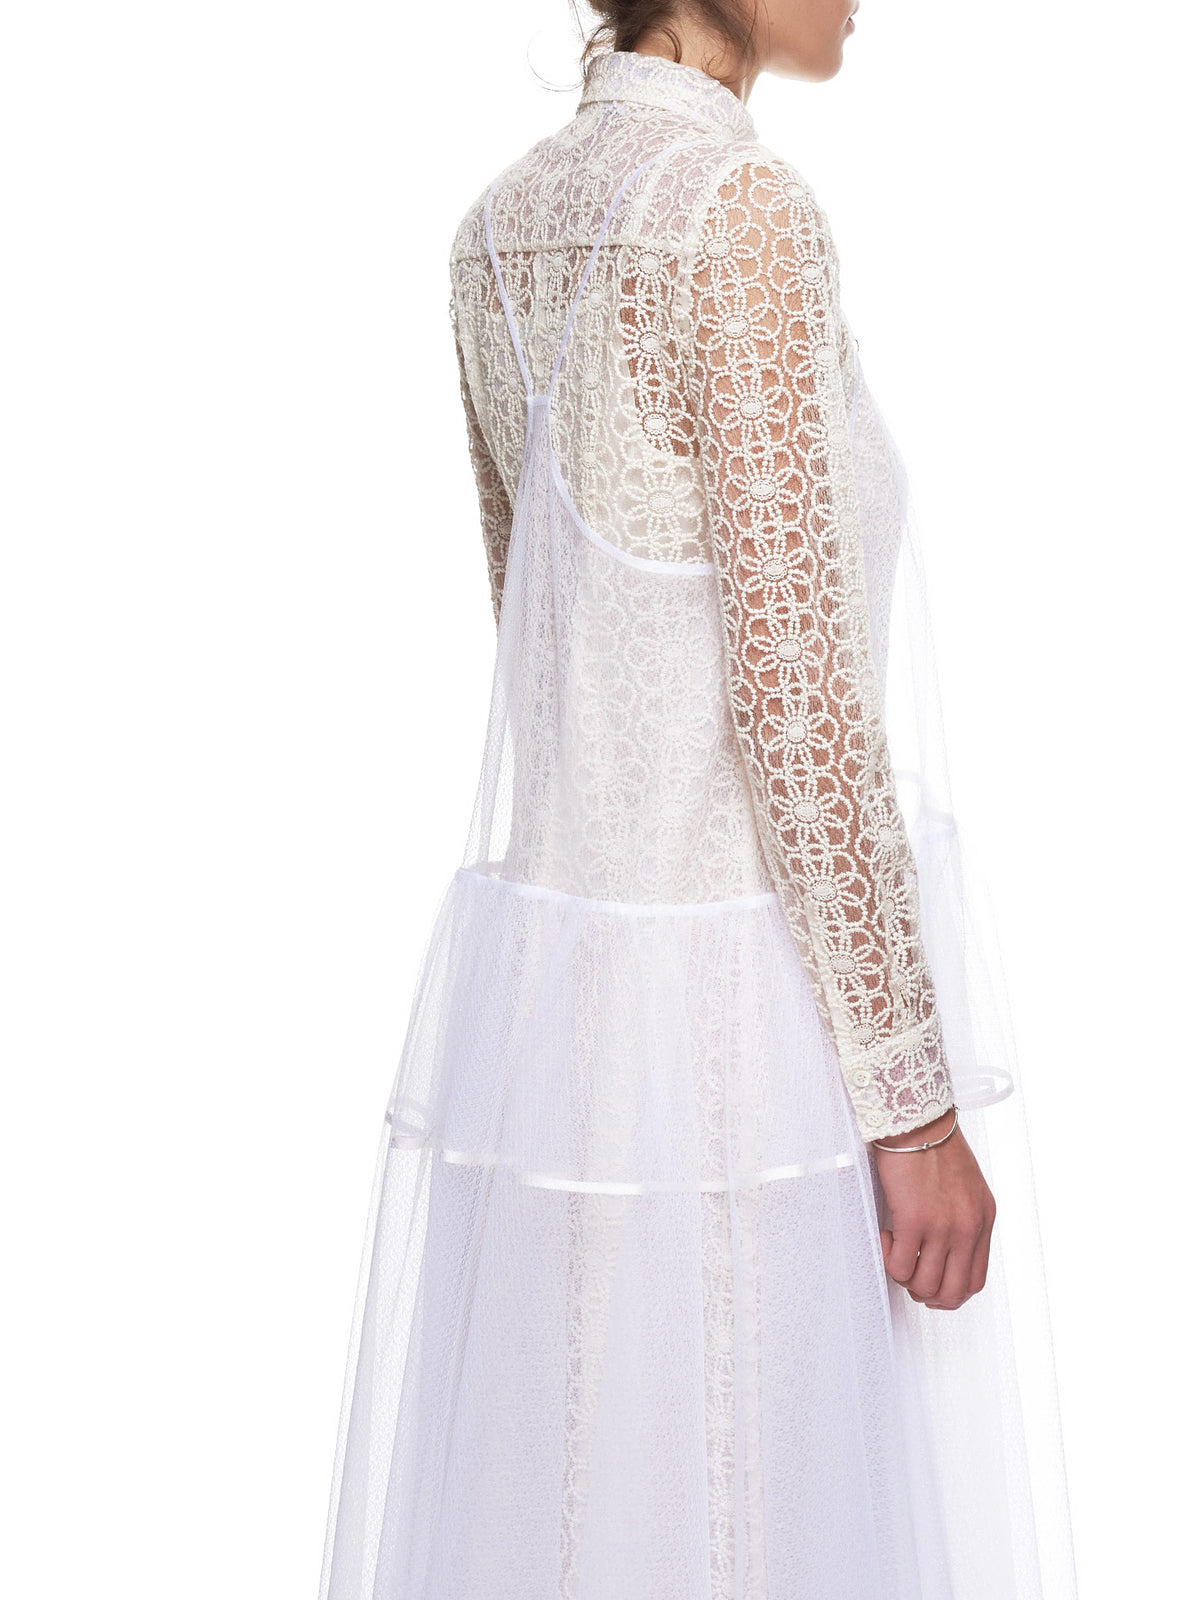 'Dancer Dress' (WD09-IVORY-FLOWERS)